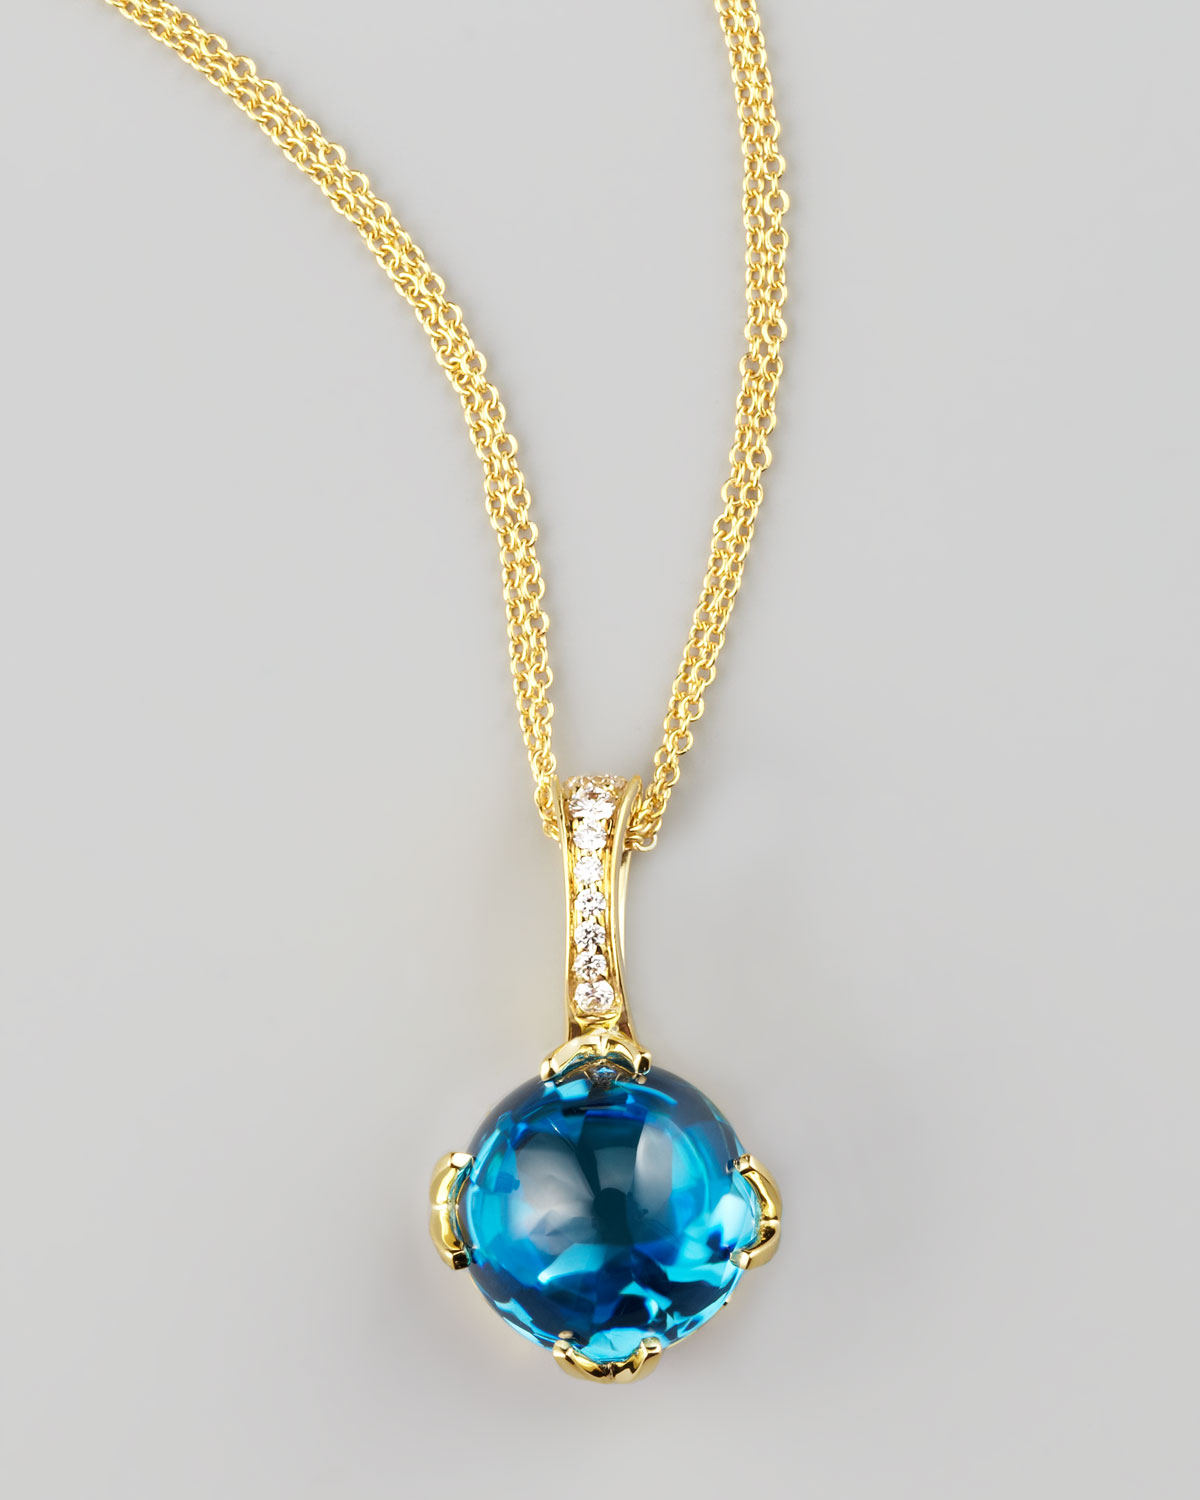 Lyst frederic sage jelly bean topaz pendant necklace in blue gallery aloadofball Gallery